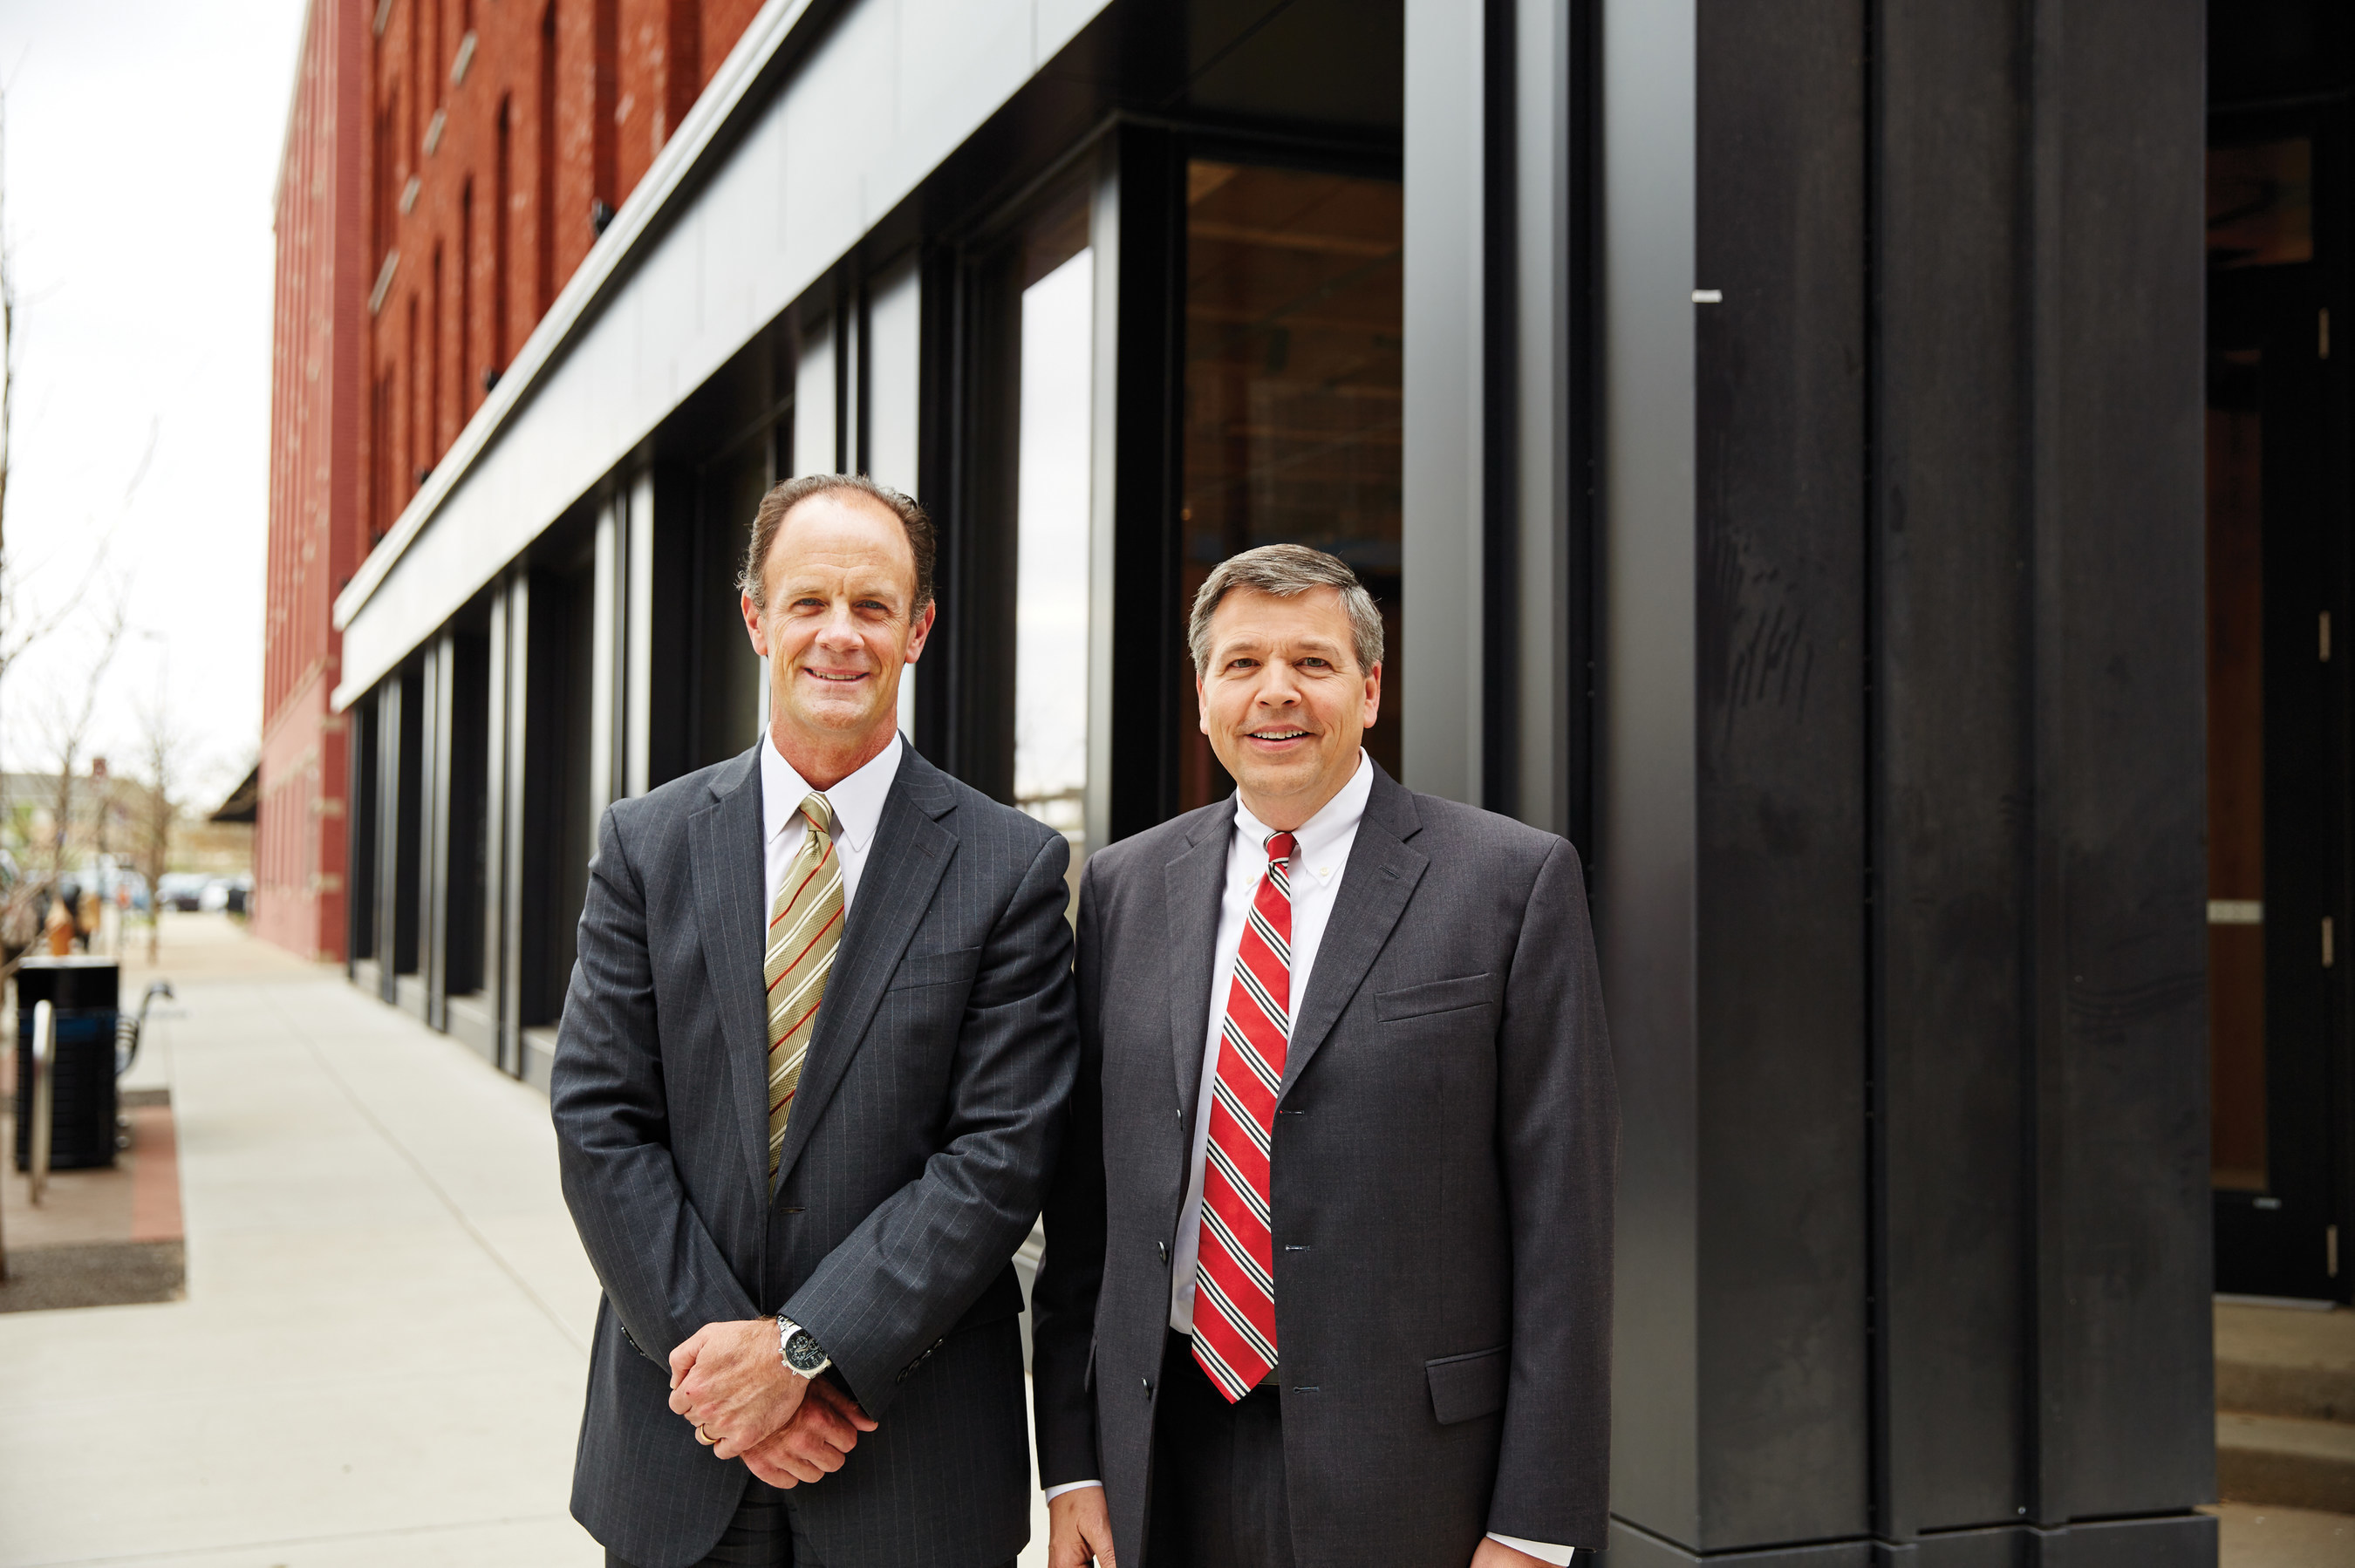 Greenleaf Trust welcomes John Grzybek and Thomas DeMeester to our new Grand Rapids office.